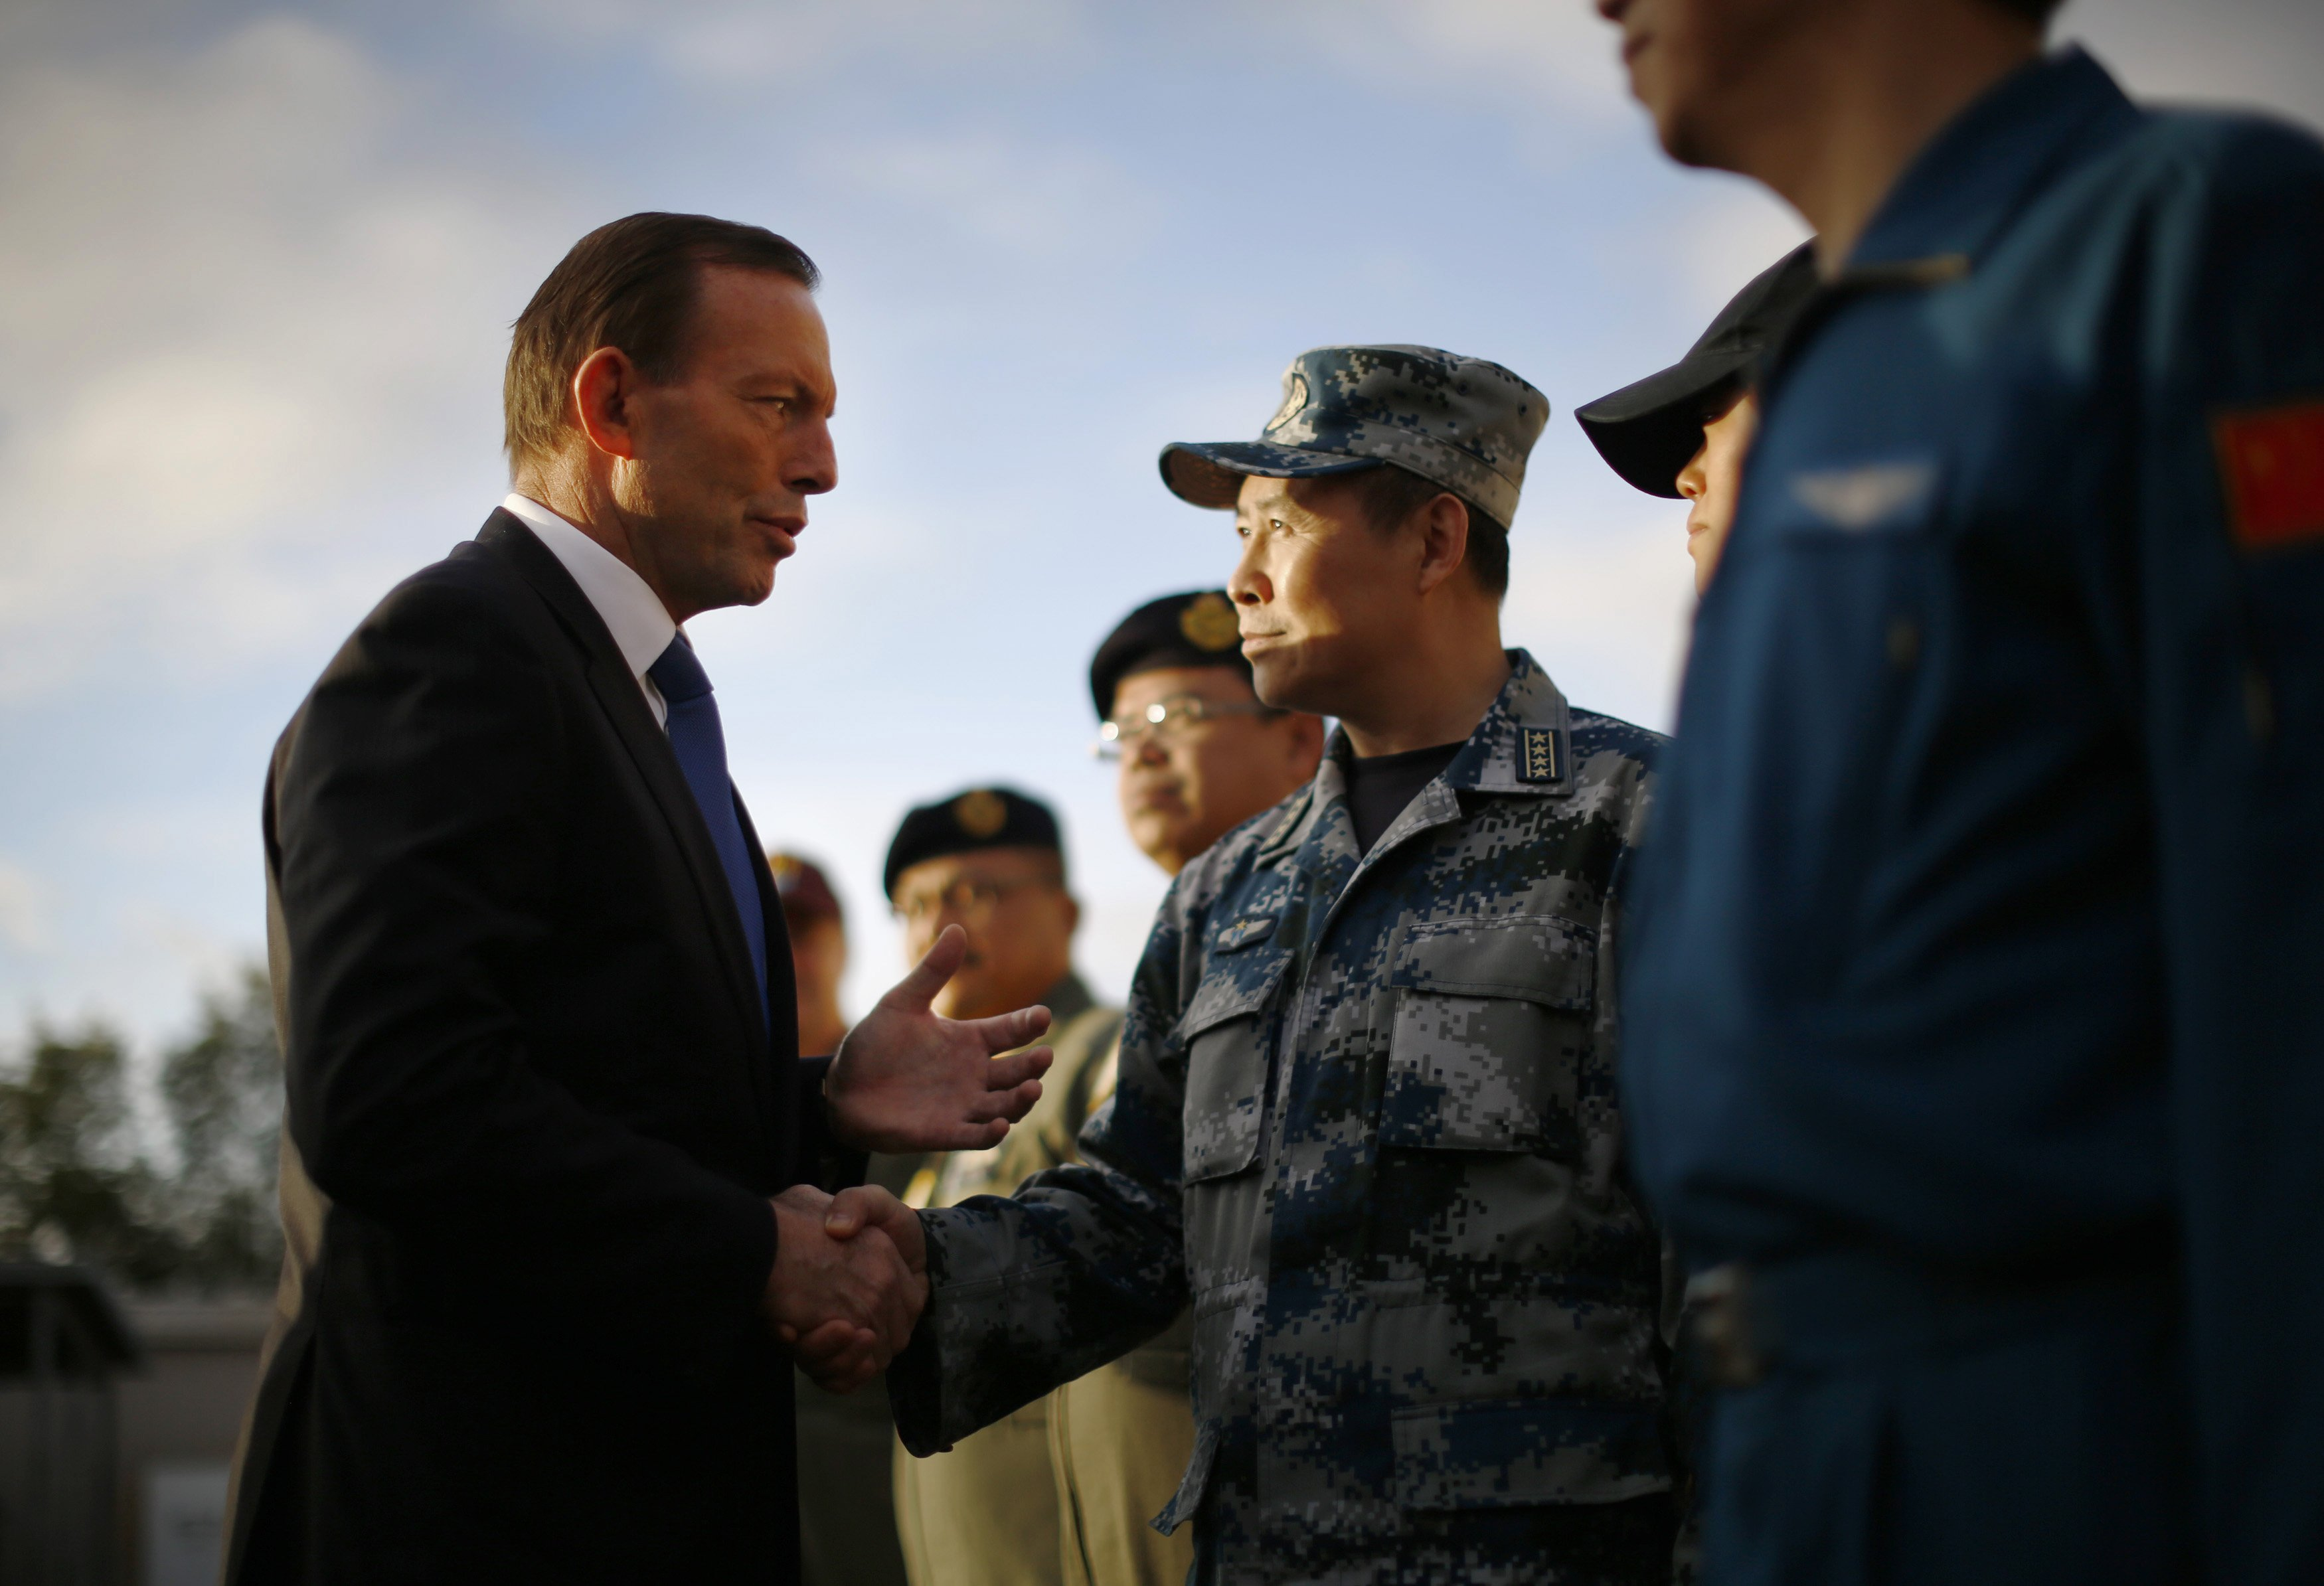 Australian Prime Minister Tony Abbott speaks with China's Air Force Senior Colonel Liu Dian Jun, head of China's effort to locate Malaysia Airlines flight MH370, during his visit to RAAF Base Pearce on March 31, 2014 in Perth, Australia.